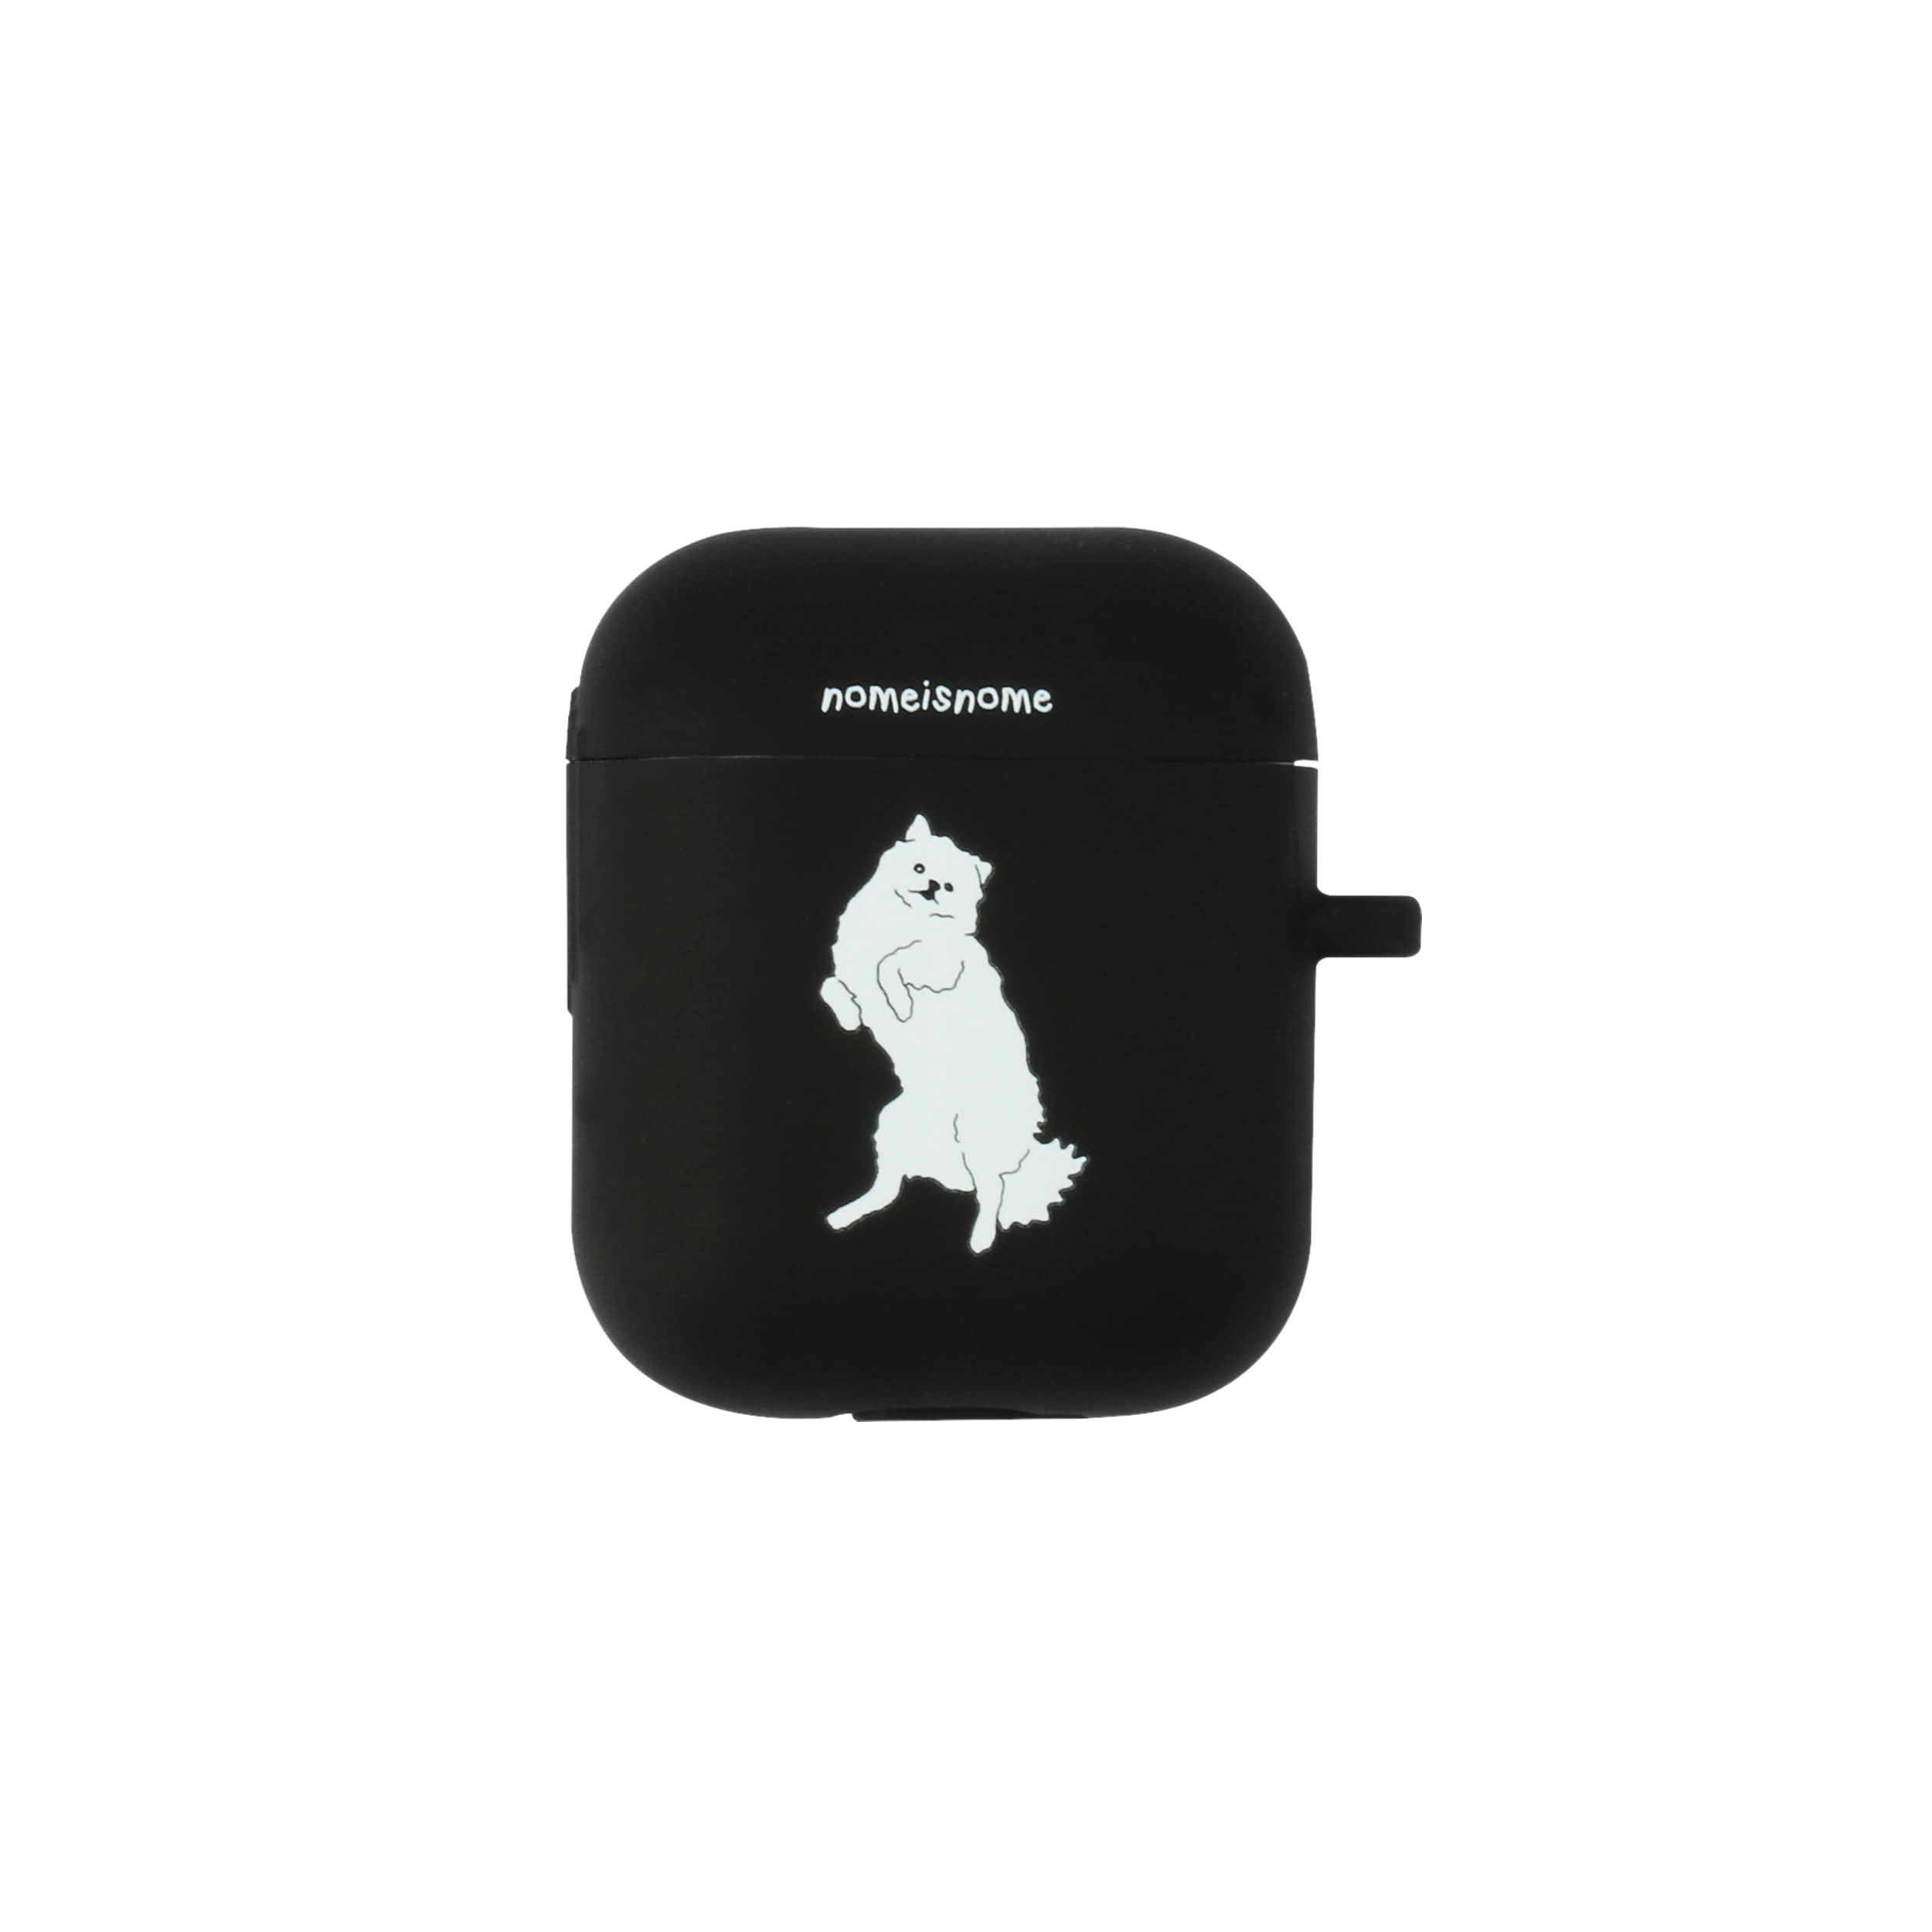 fogbownome black no.1 / airpods case